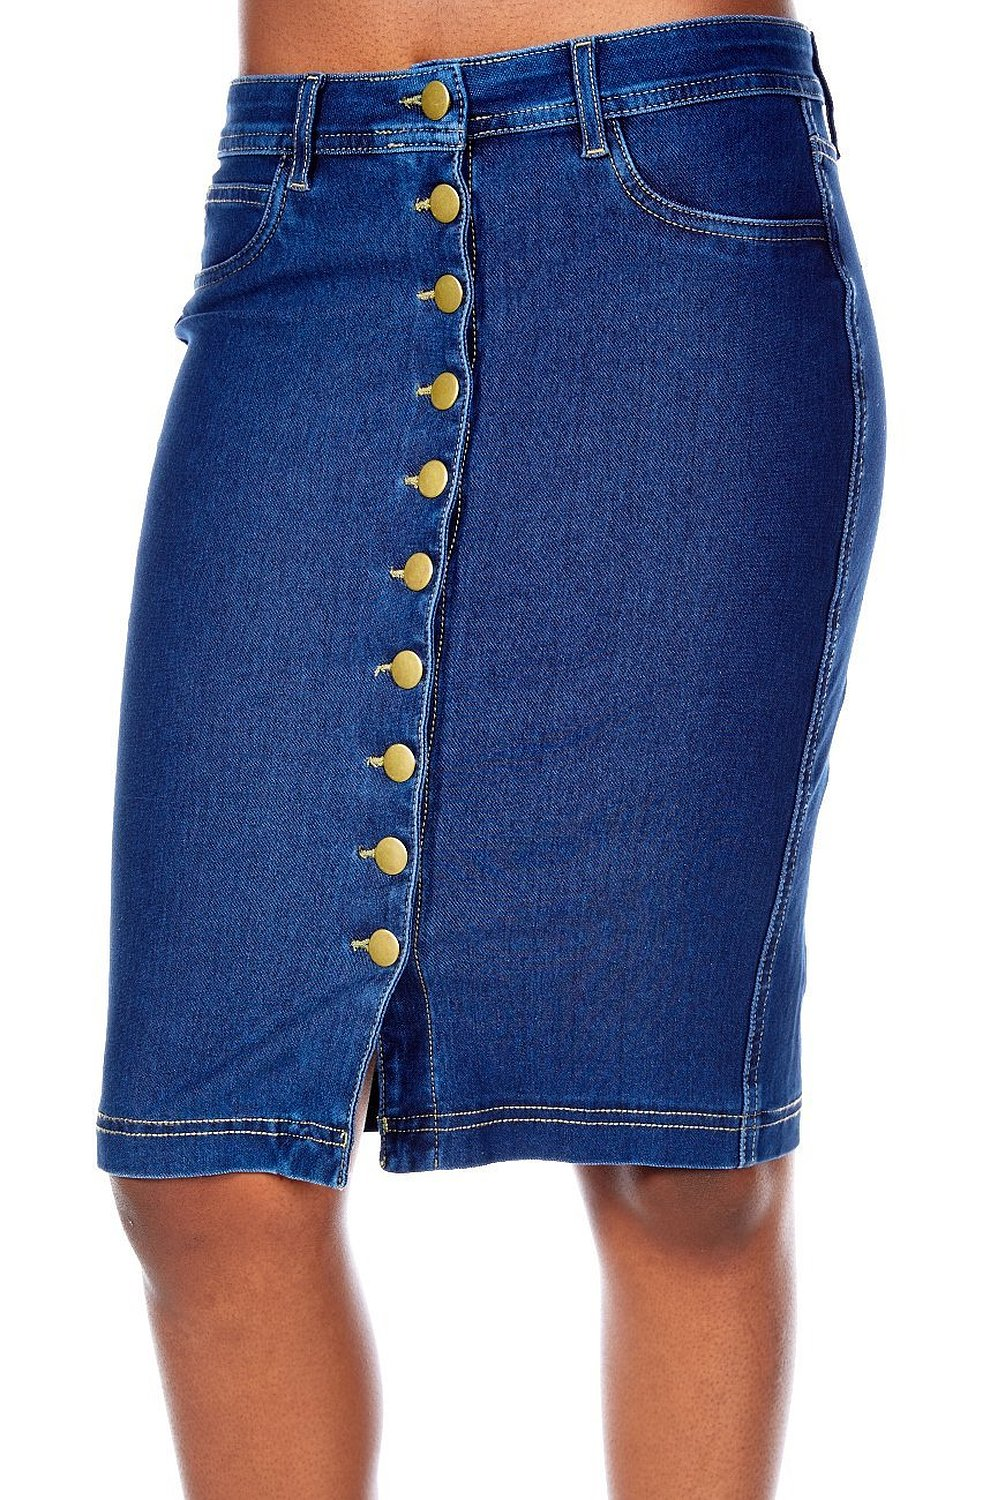 Front Button Denim Midi Knee Length Bodycon Pencil Skirt 5000 at ...